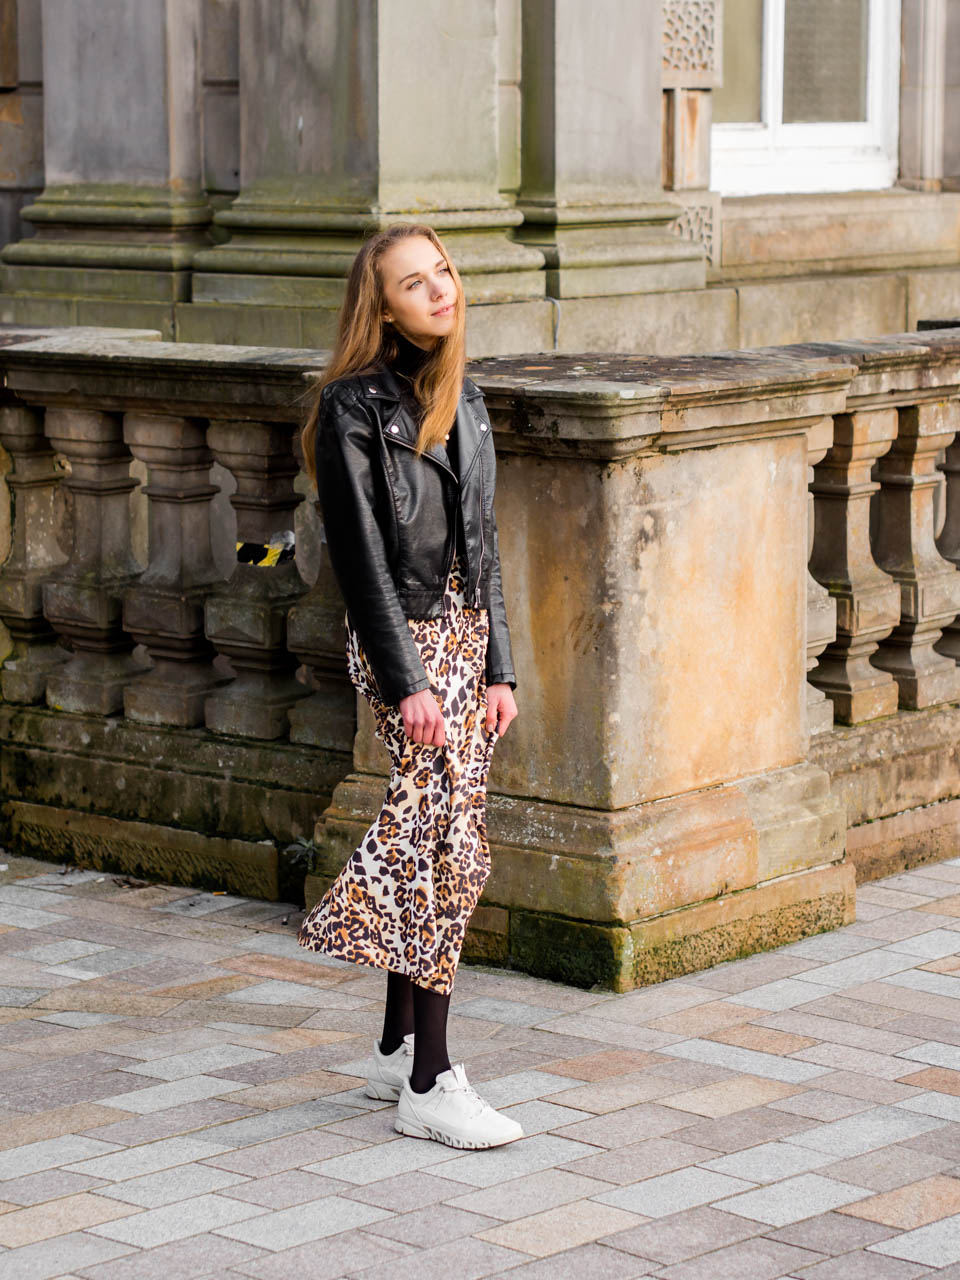 Fashion blogger autumn outfit inspiration with leopard skirt and faux leather biker - Muotibloggaaja, syysmuoti, leopardihame ja musta nahkatakki